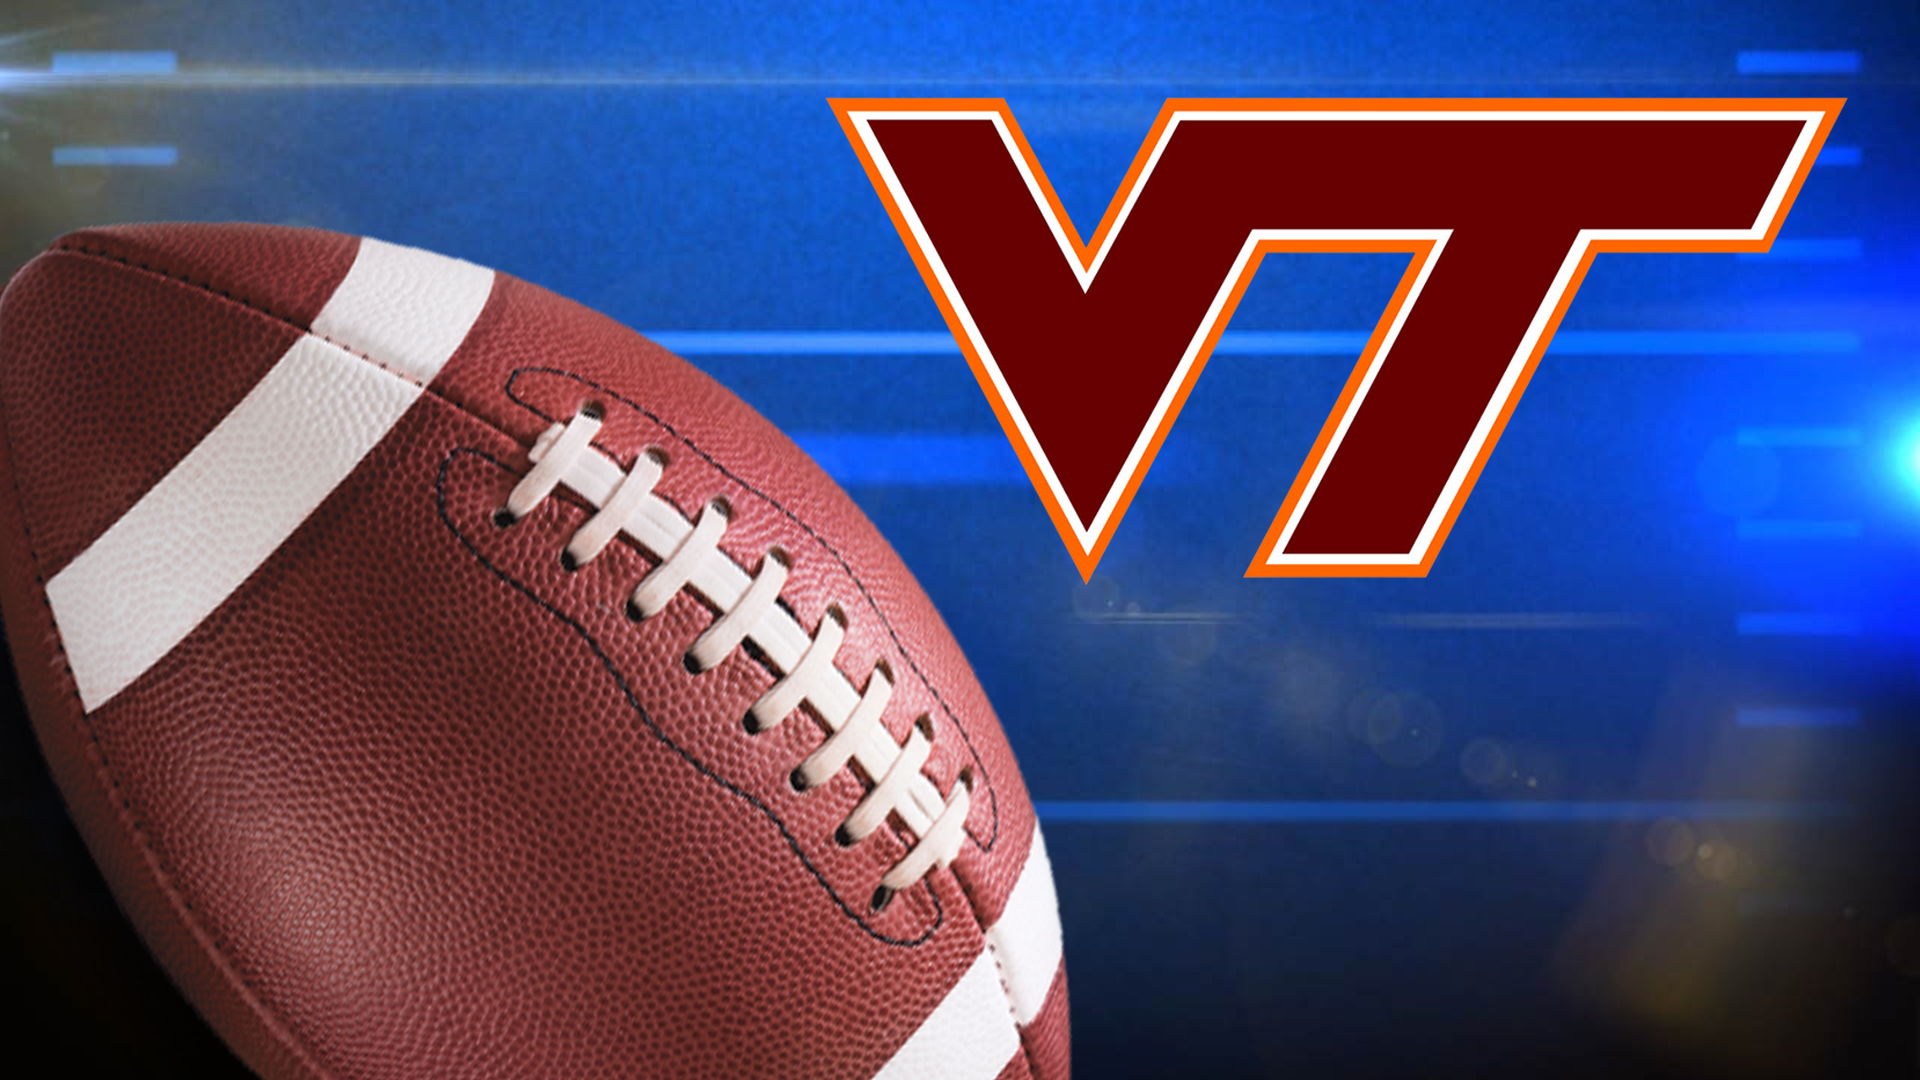 GENERIC VT FOOTBALL MONITOR_1536034822190.jpg.jpg